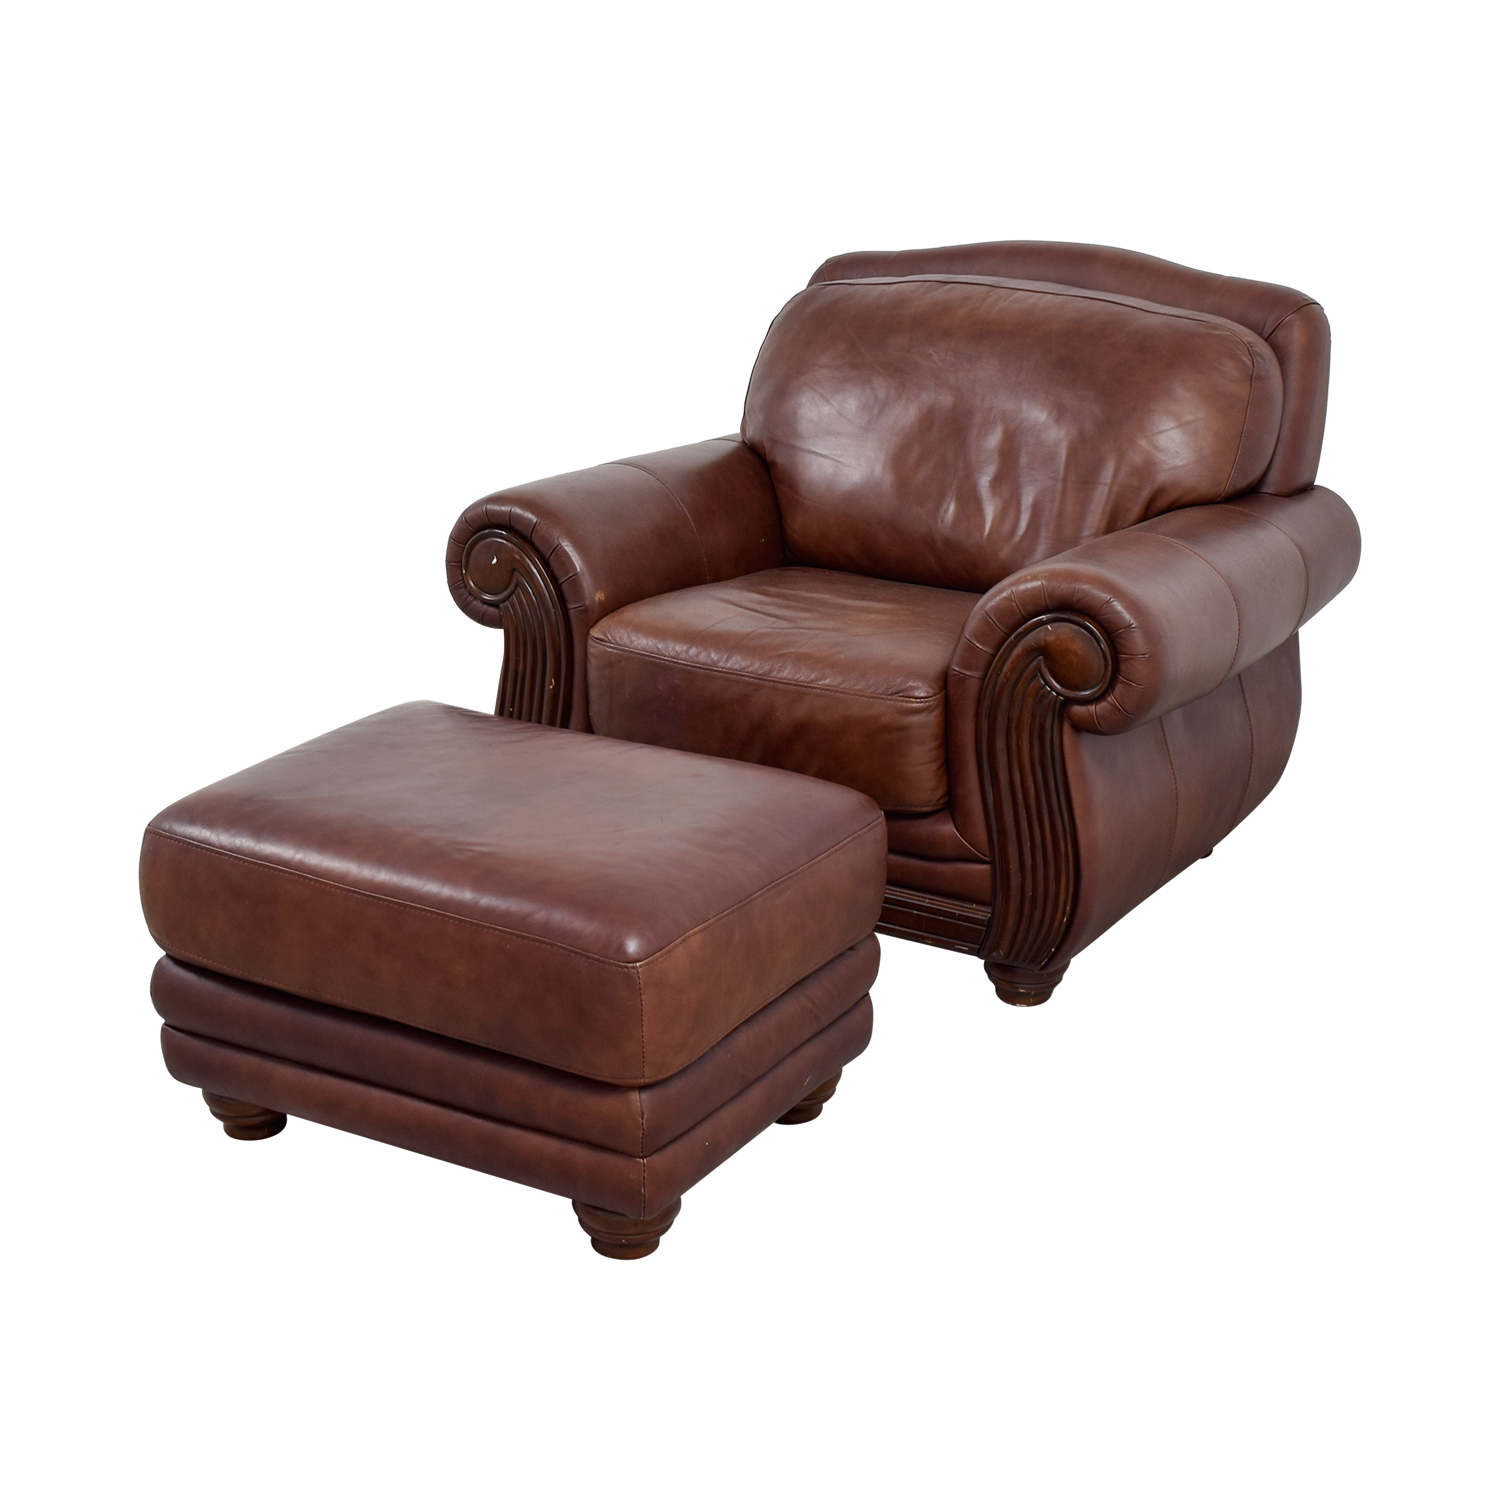 Go Chair 54 Off Rooms To Go Rooms To Go Brown Leather Chair And